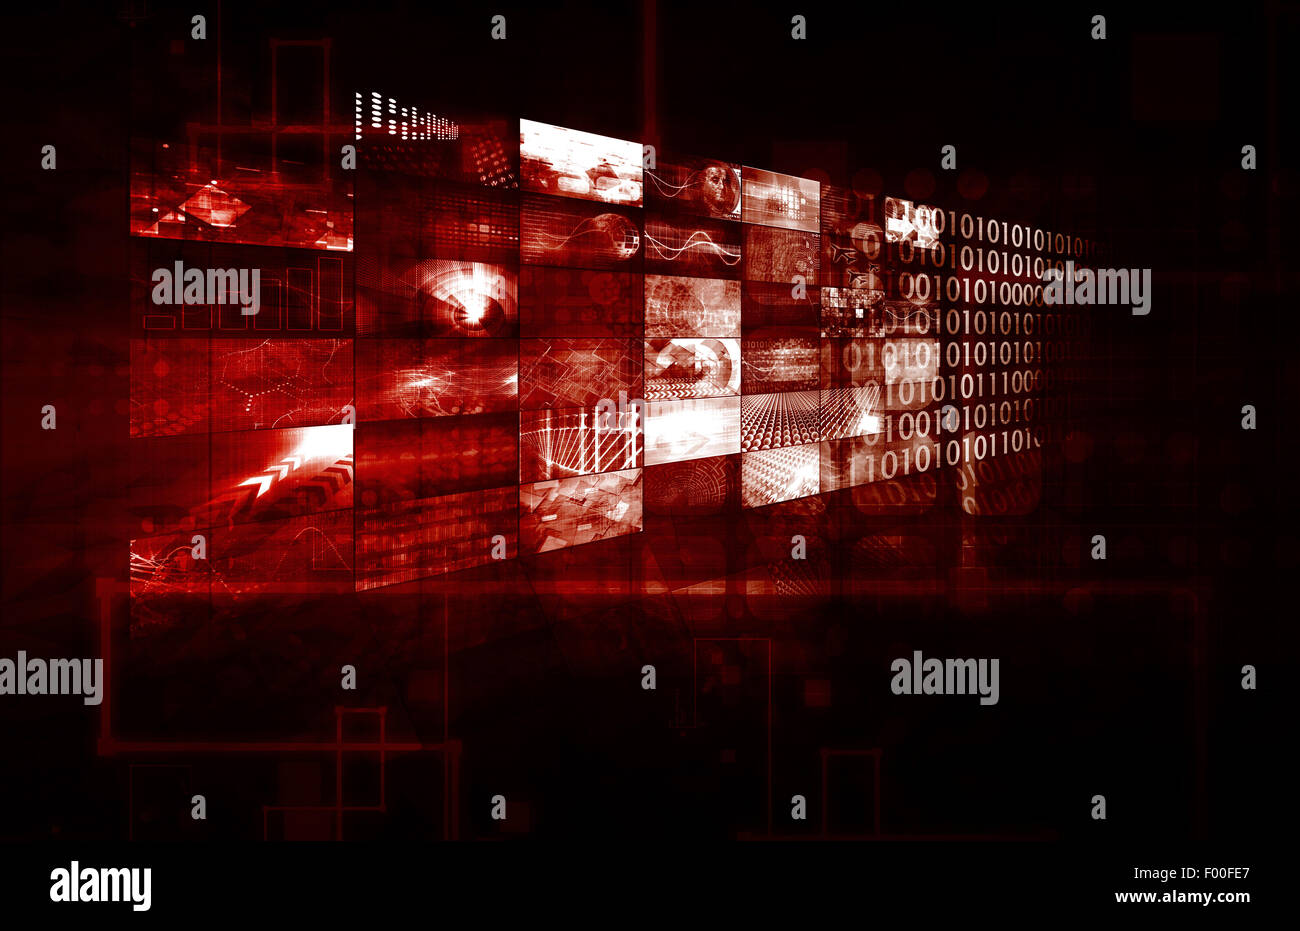 Data Management Technology and Big Data as Art - Stock Image